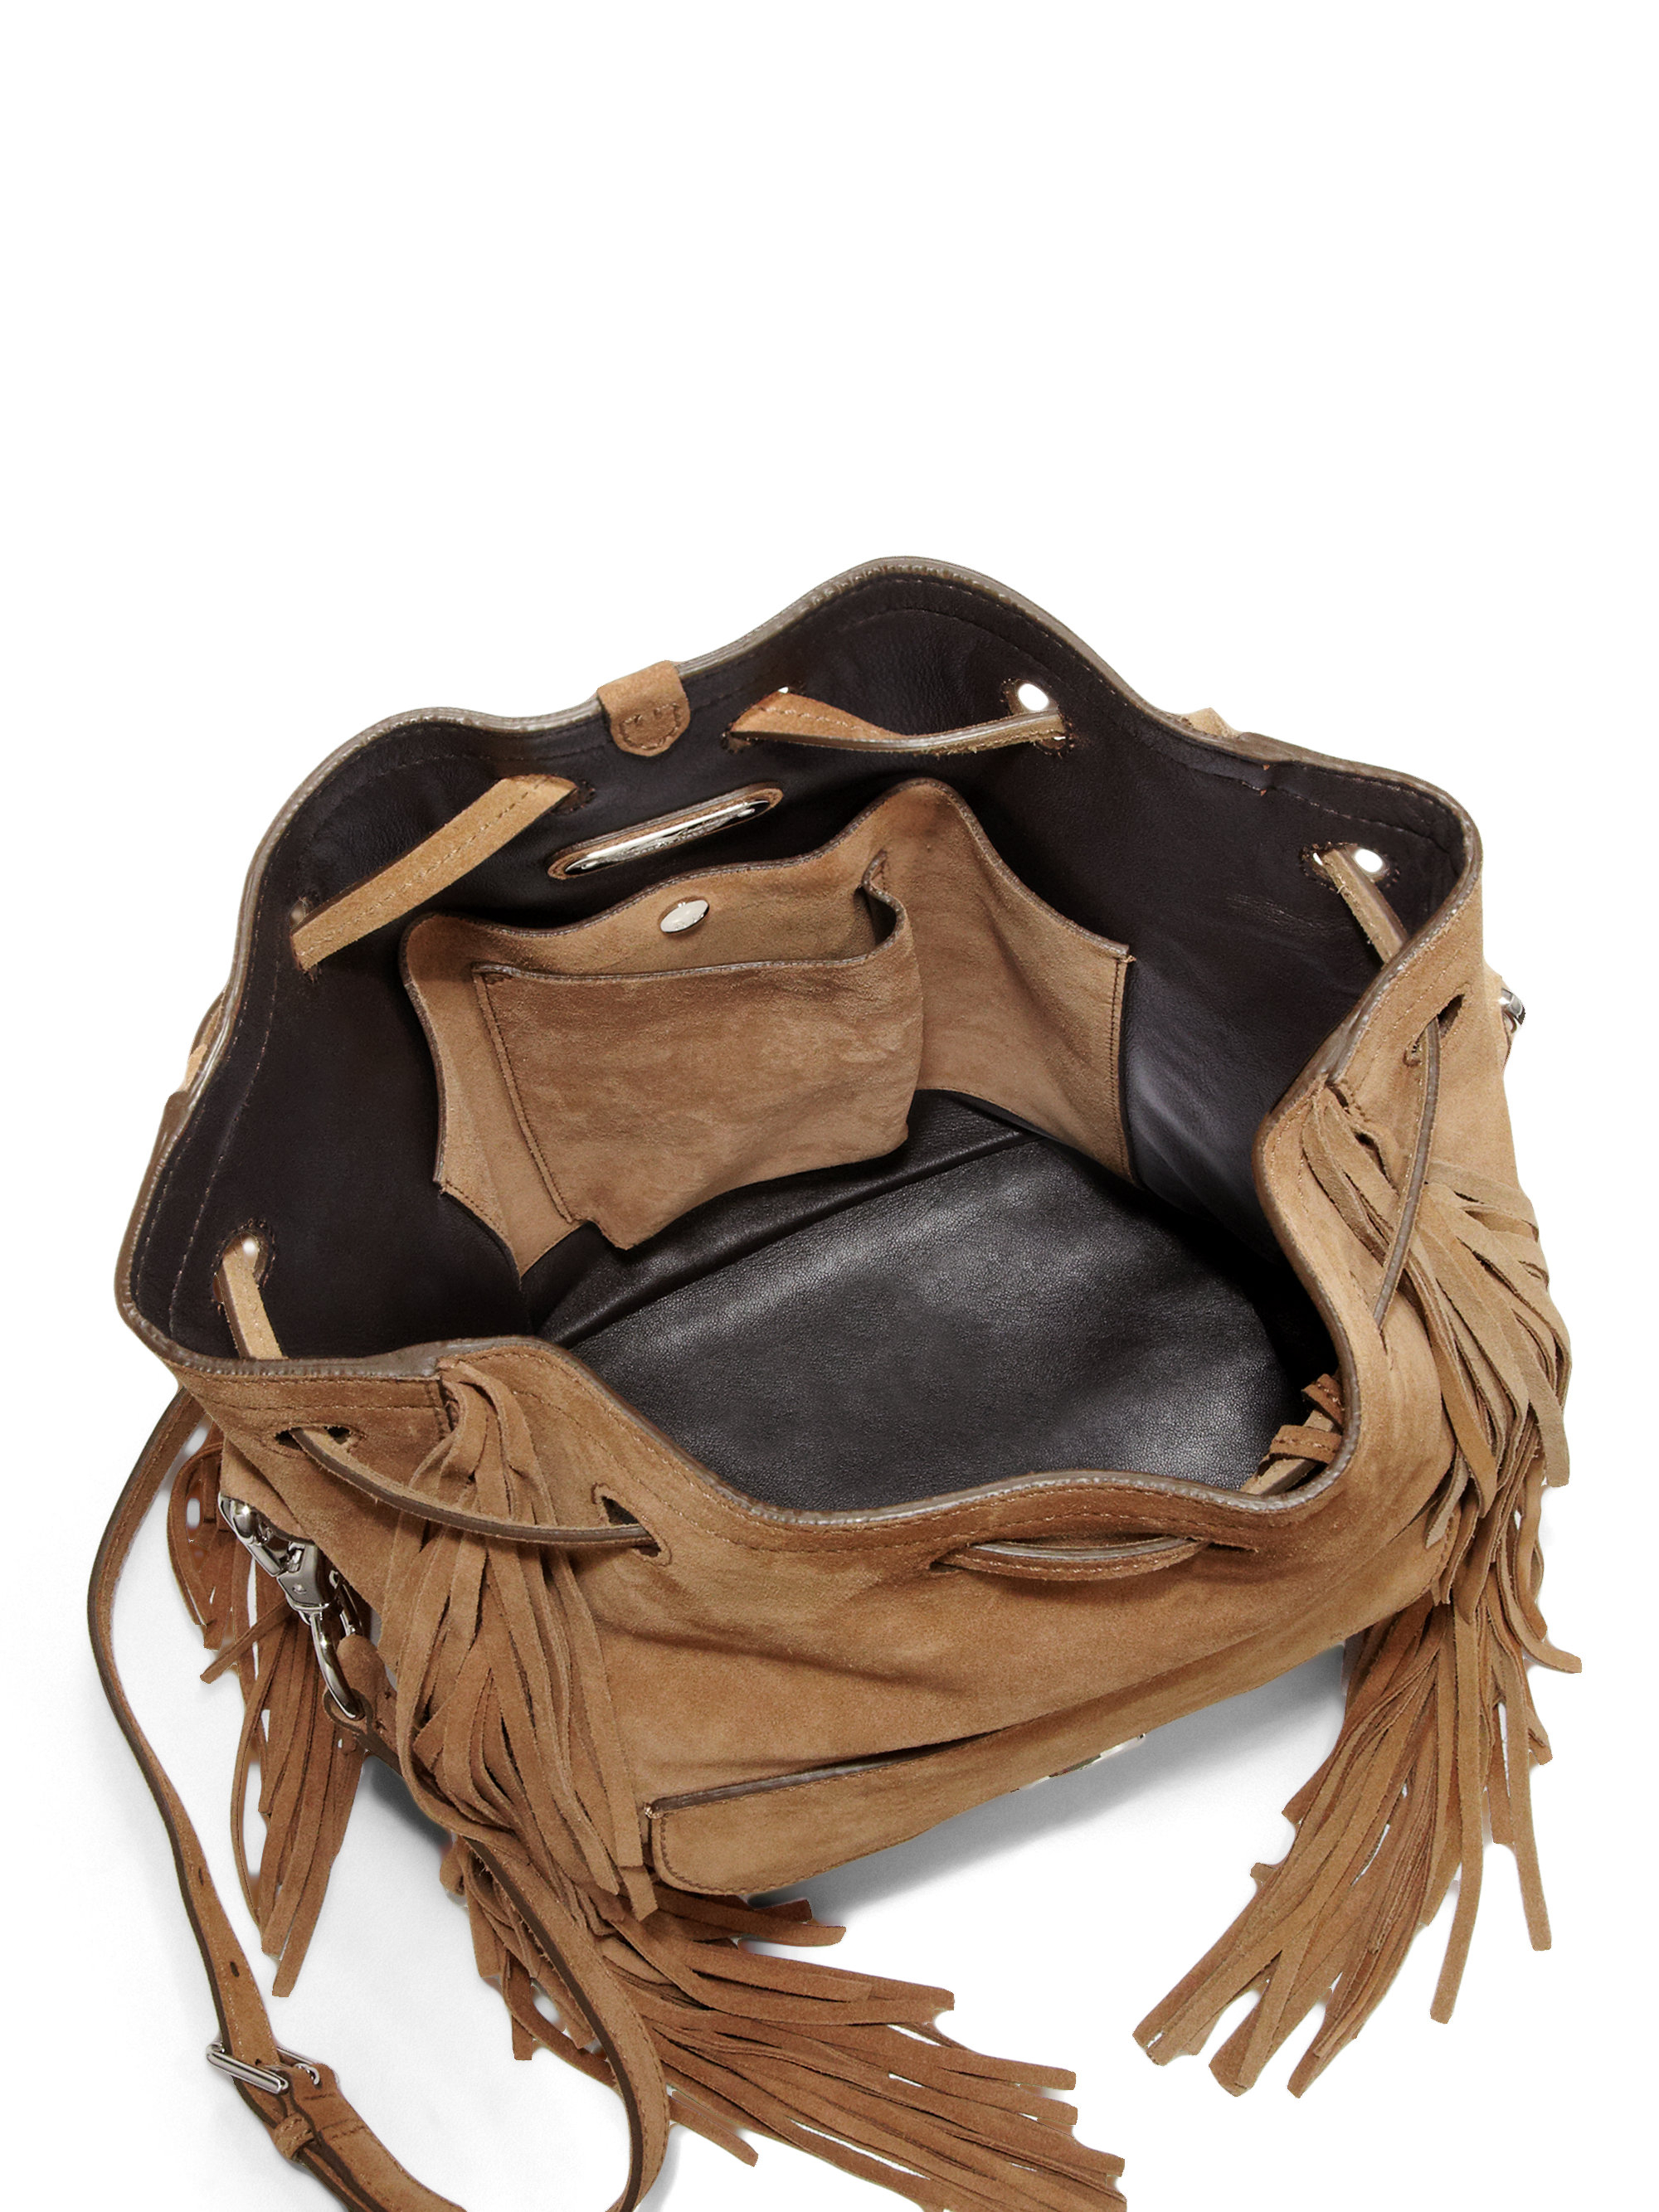 eaa4488c1c05 Lyst - Ralph Lauren Collection Ricky Fringed Suede Bucket Bag in Brown